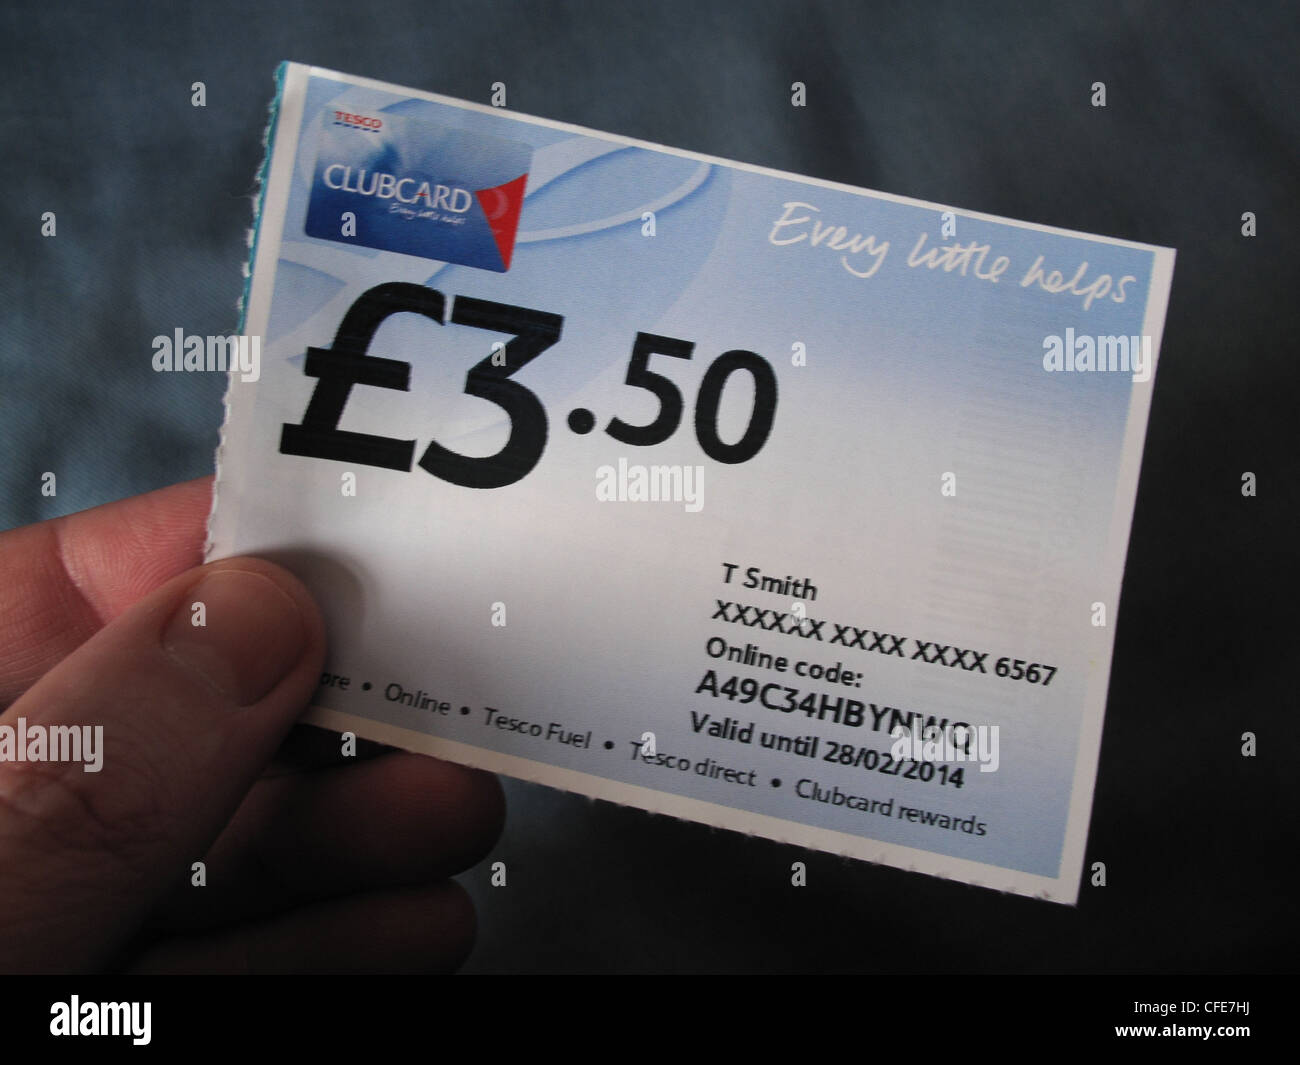 £3.50 Tesco Clubcard 'Every Little Helps' voucher held in a hand by a shopper - Stock Image